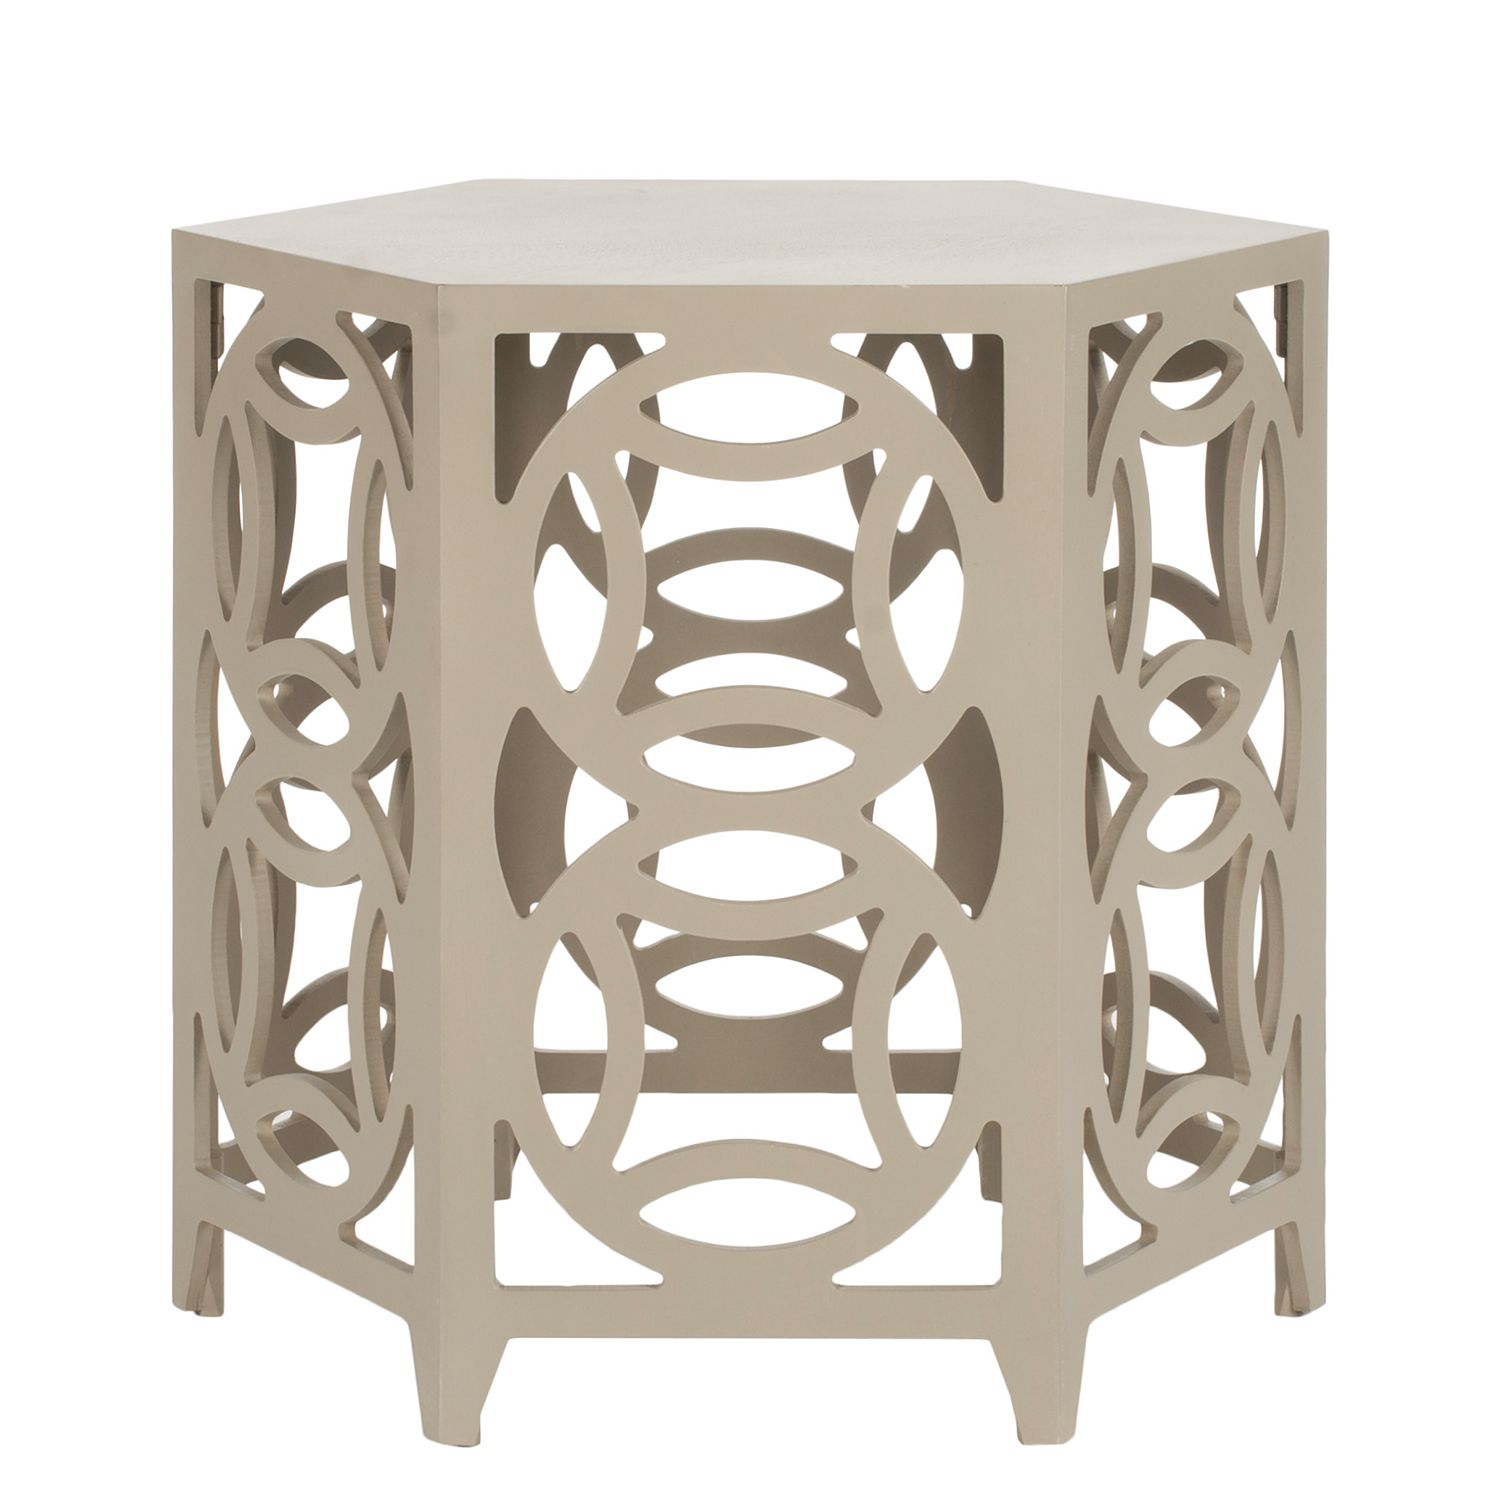 Table d'appoint Lafra - Bayur massif - Beige, Safavieh